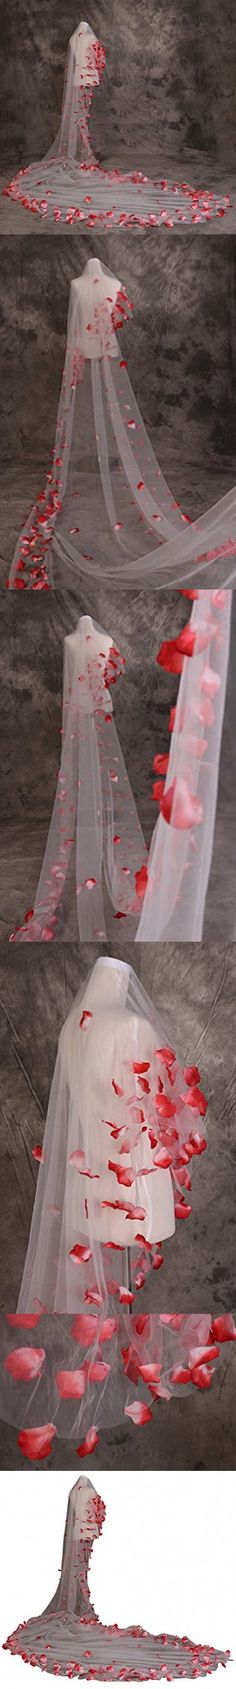 Drasawee 1T Cathedral Length Red Flower Petal Long Wedding Bridal Veil 500CM/196Inch